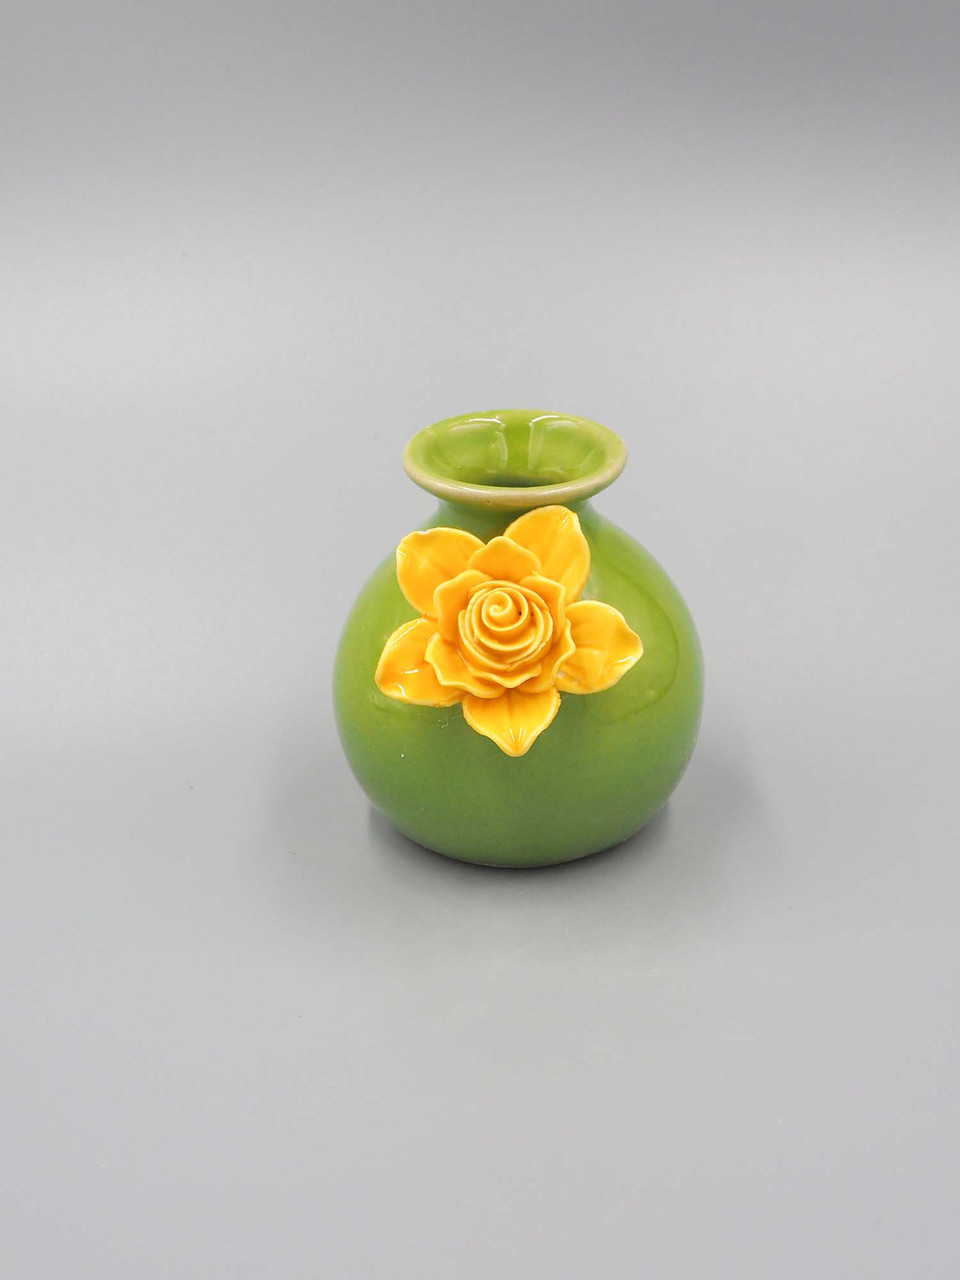 green ceramic bud vase with yellow flower